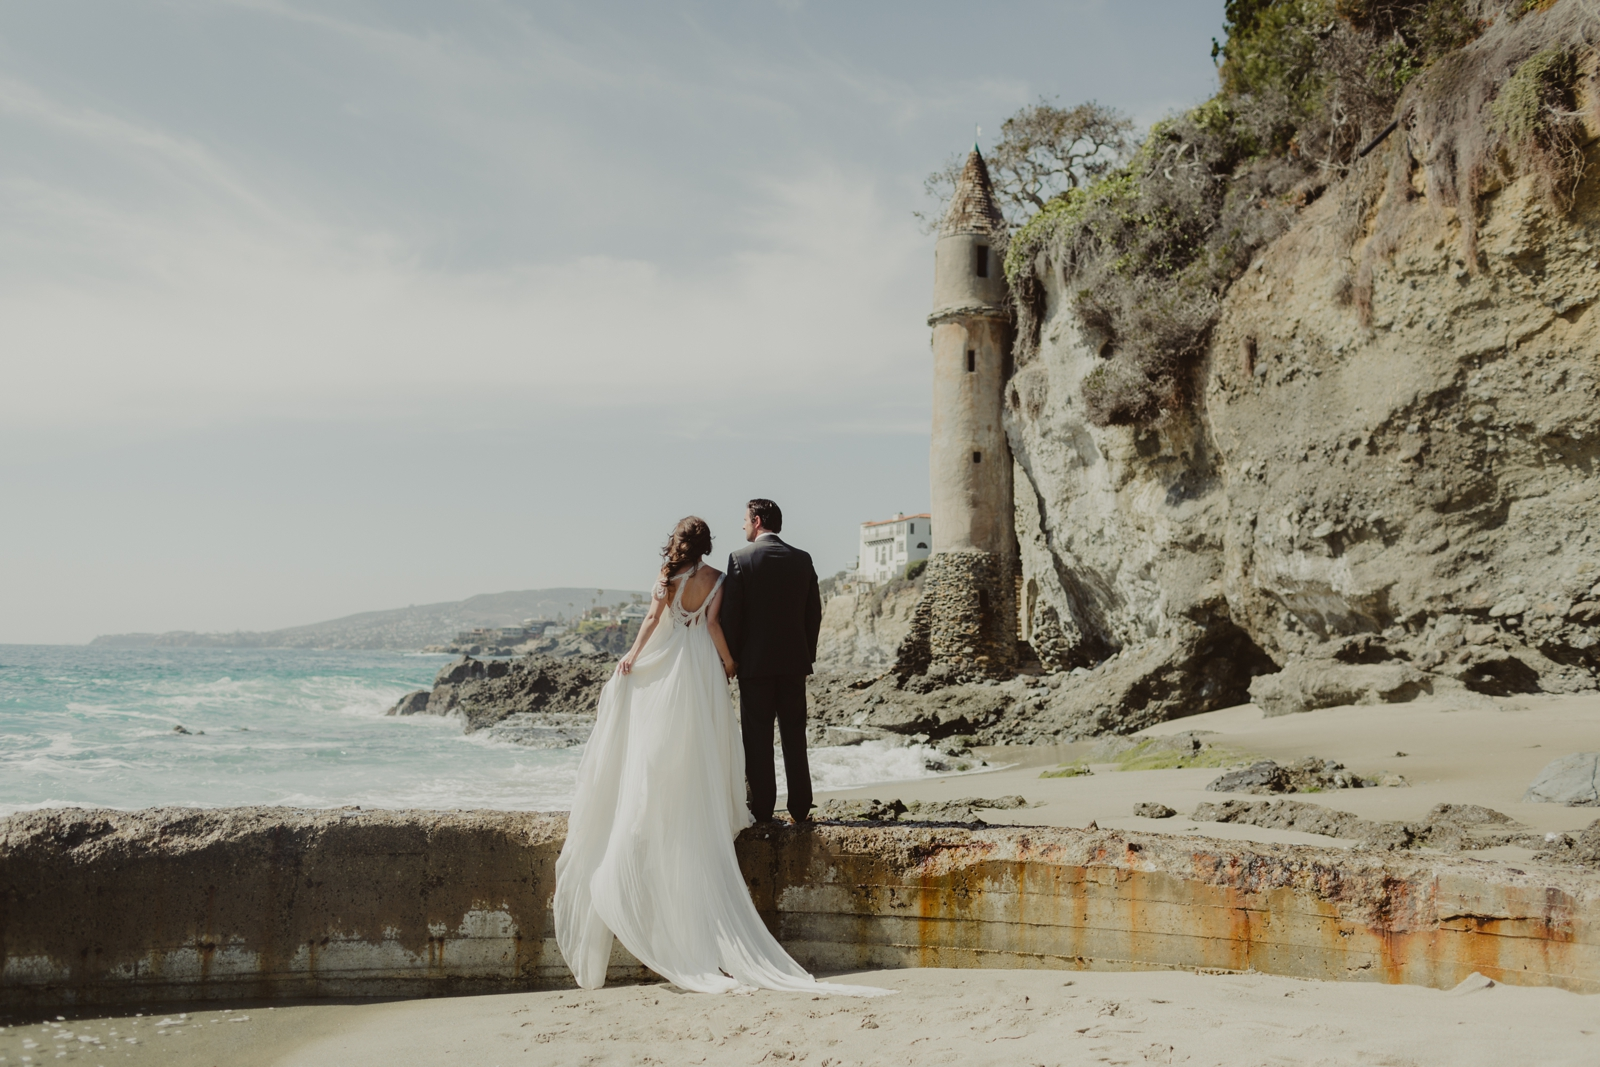 Kevin+Angie-Married-Blog-00001.jpg